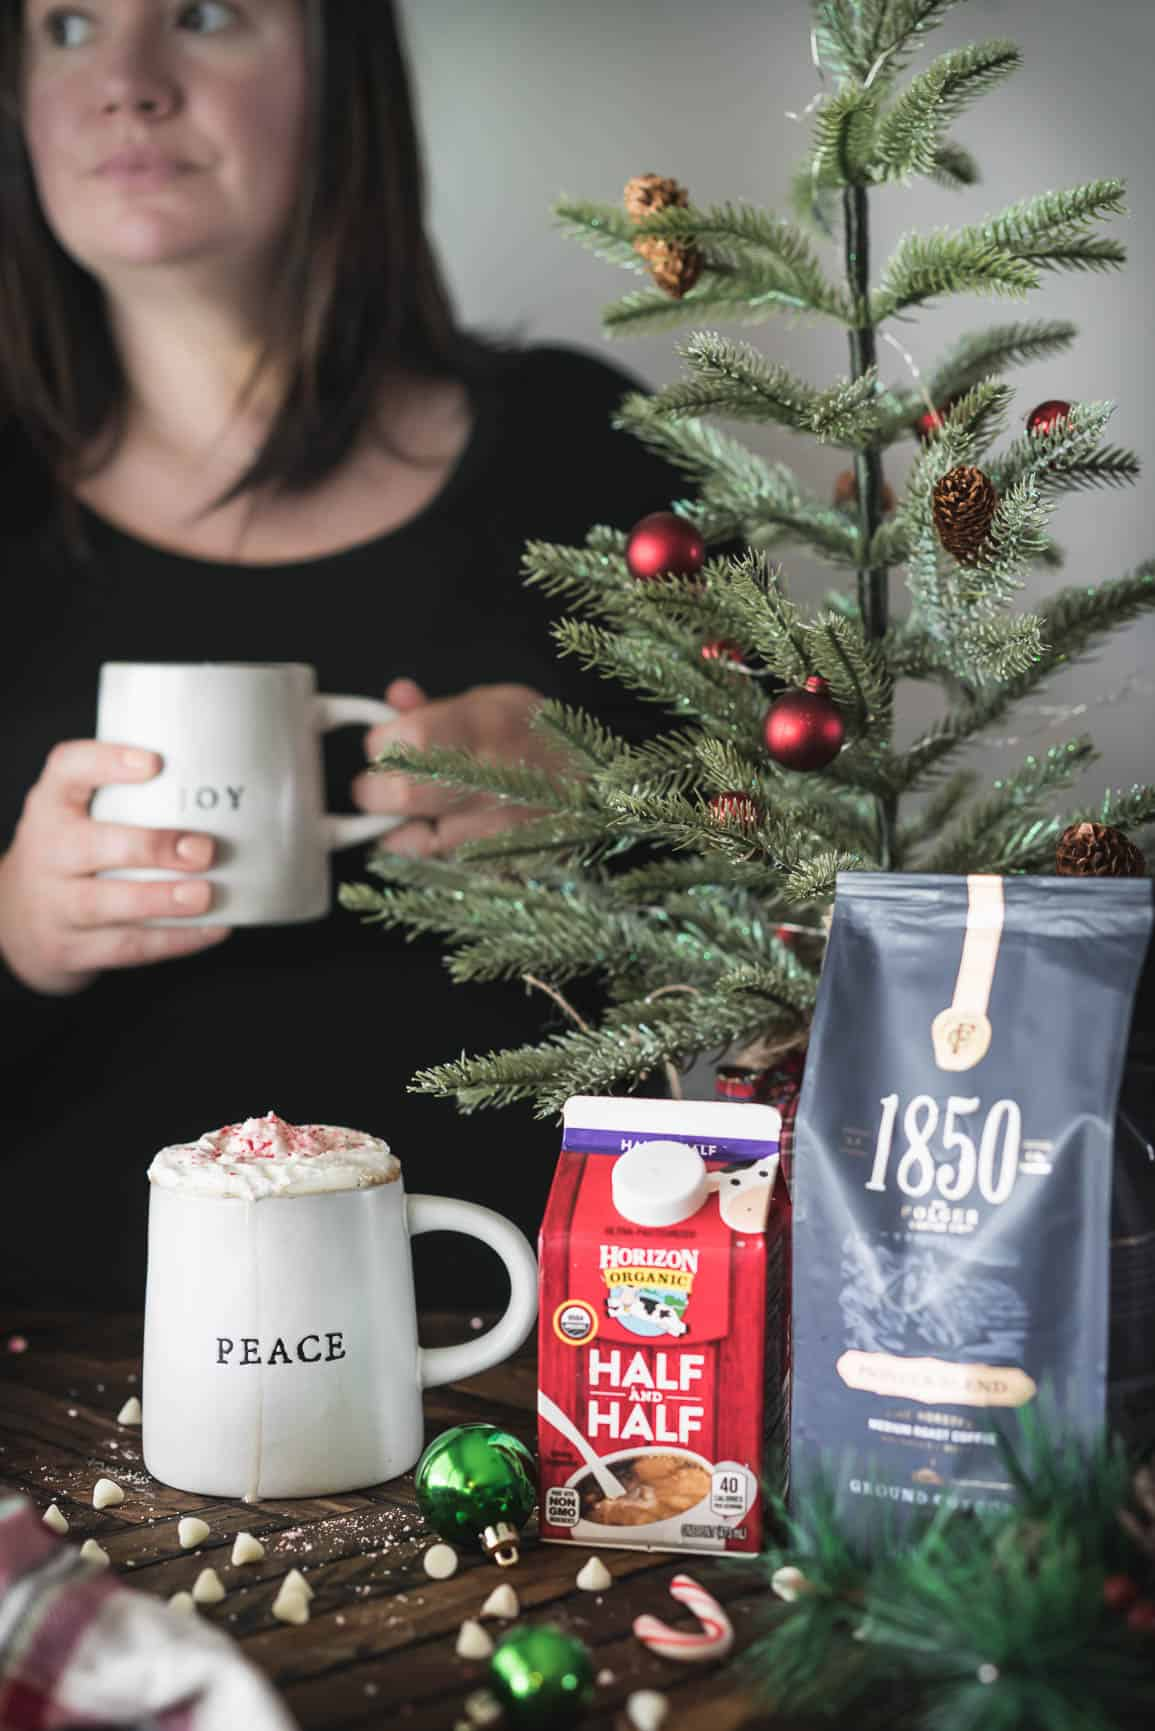 White Chocolate Peppermint Pour Over Coffee